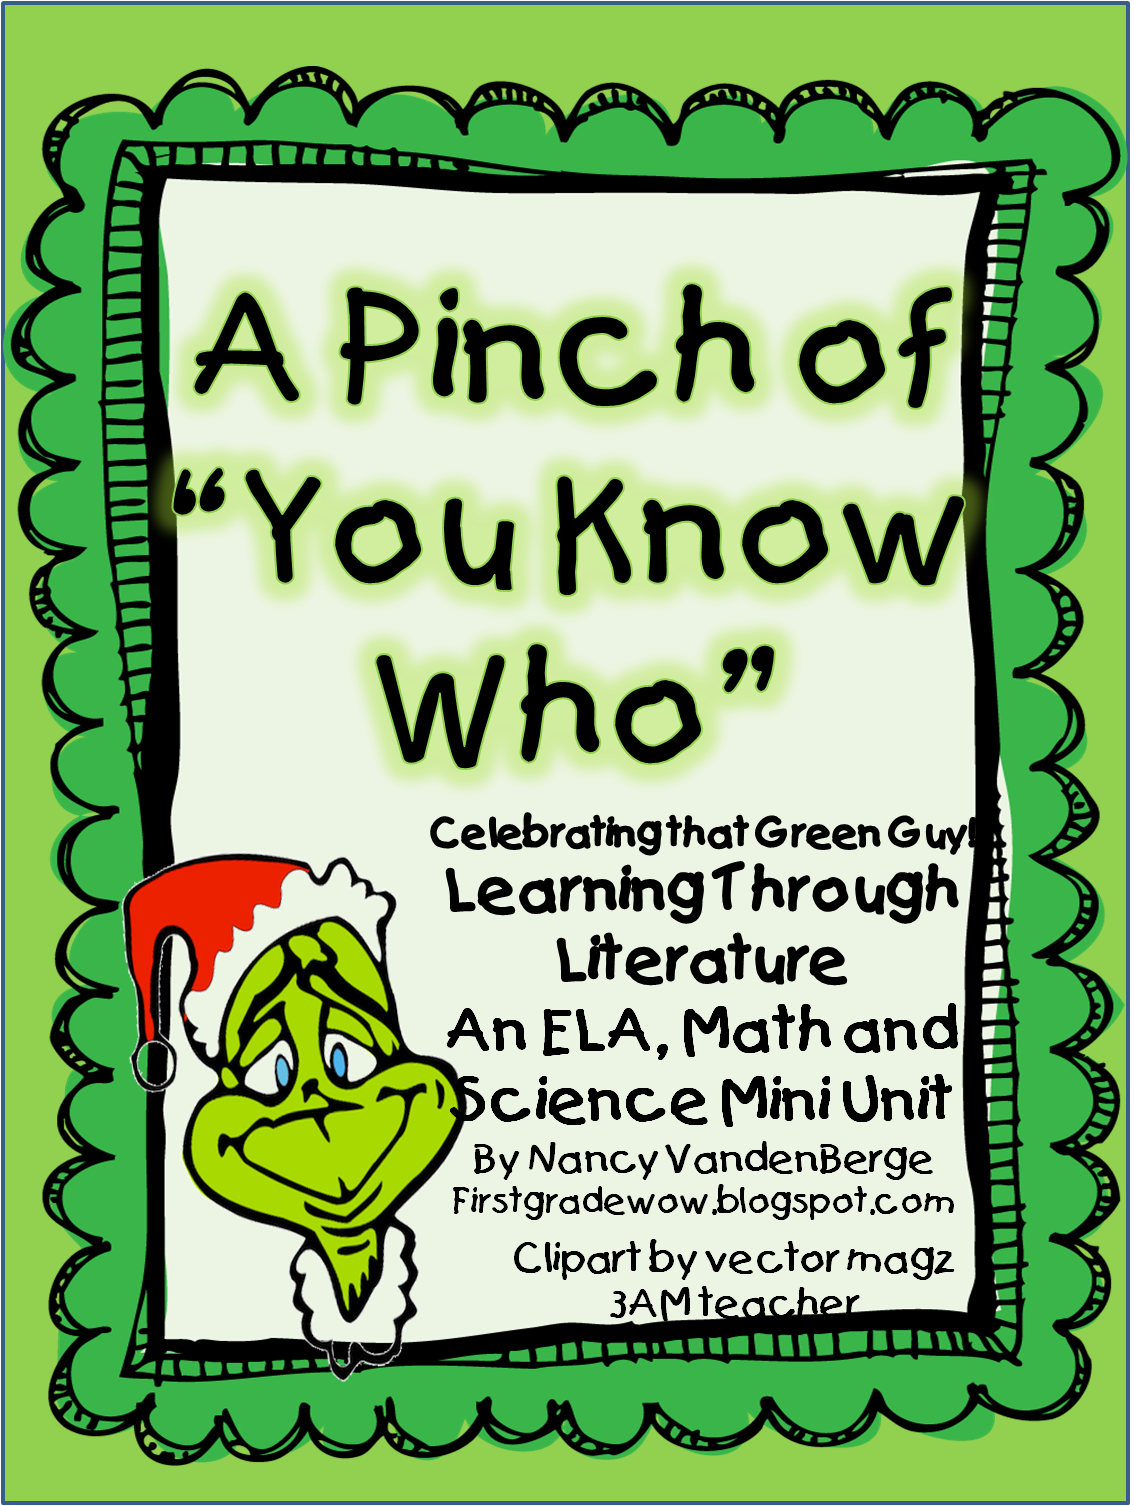 """First Grade Wow: A Pinch of """"You Know Who!"""""""